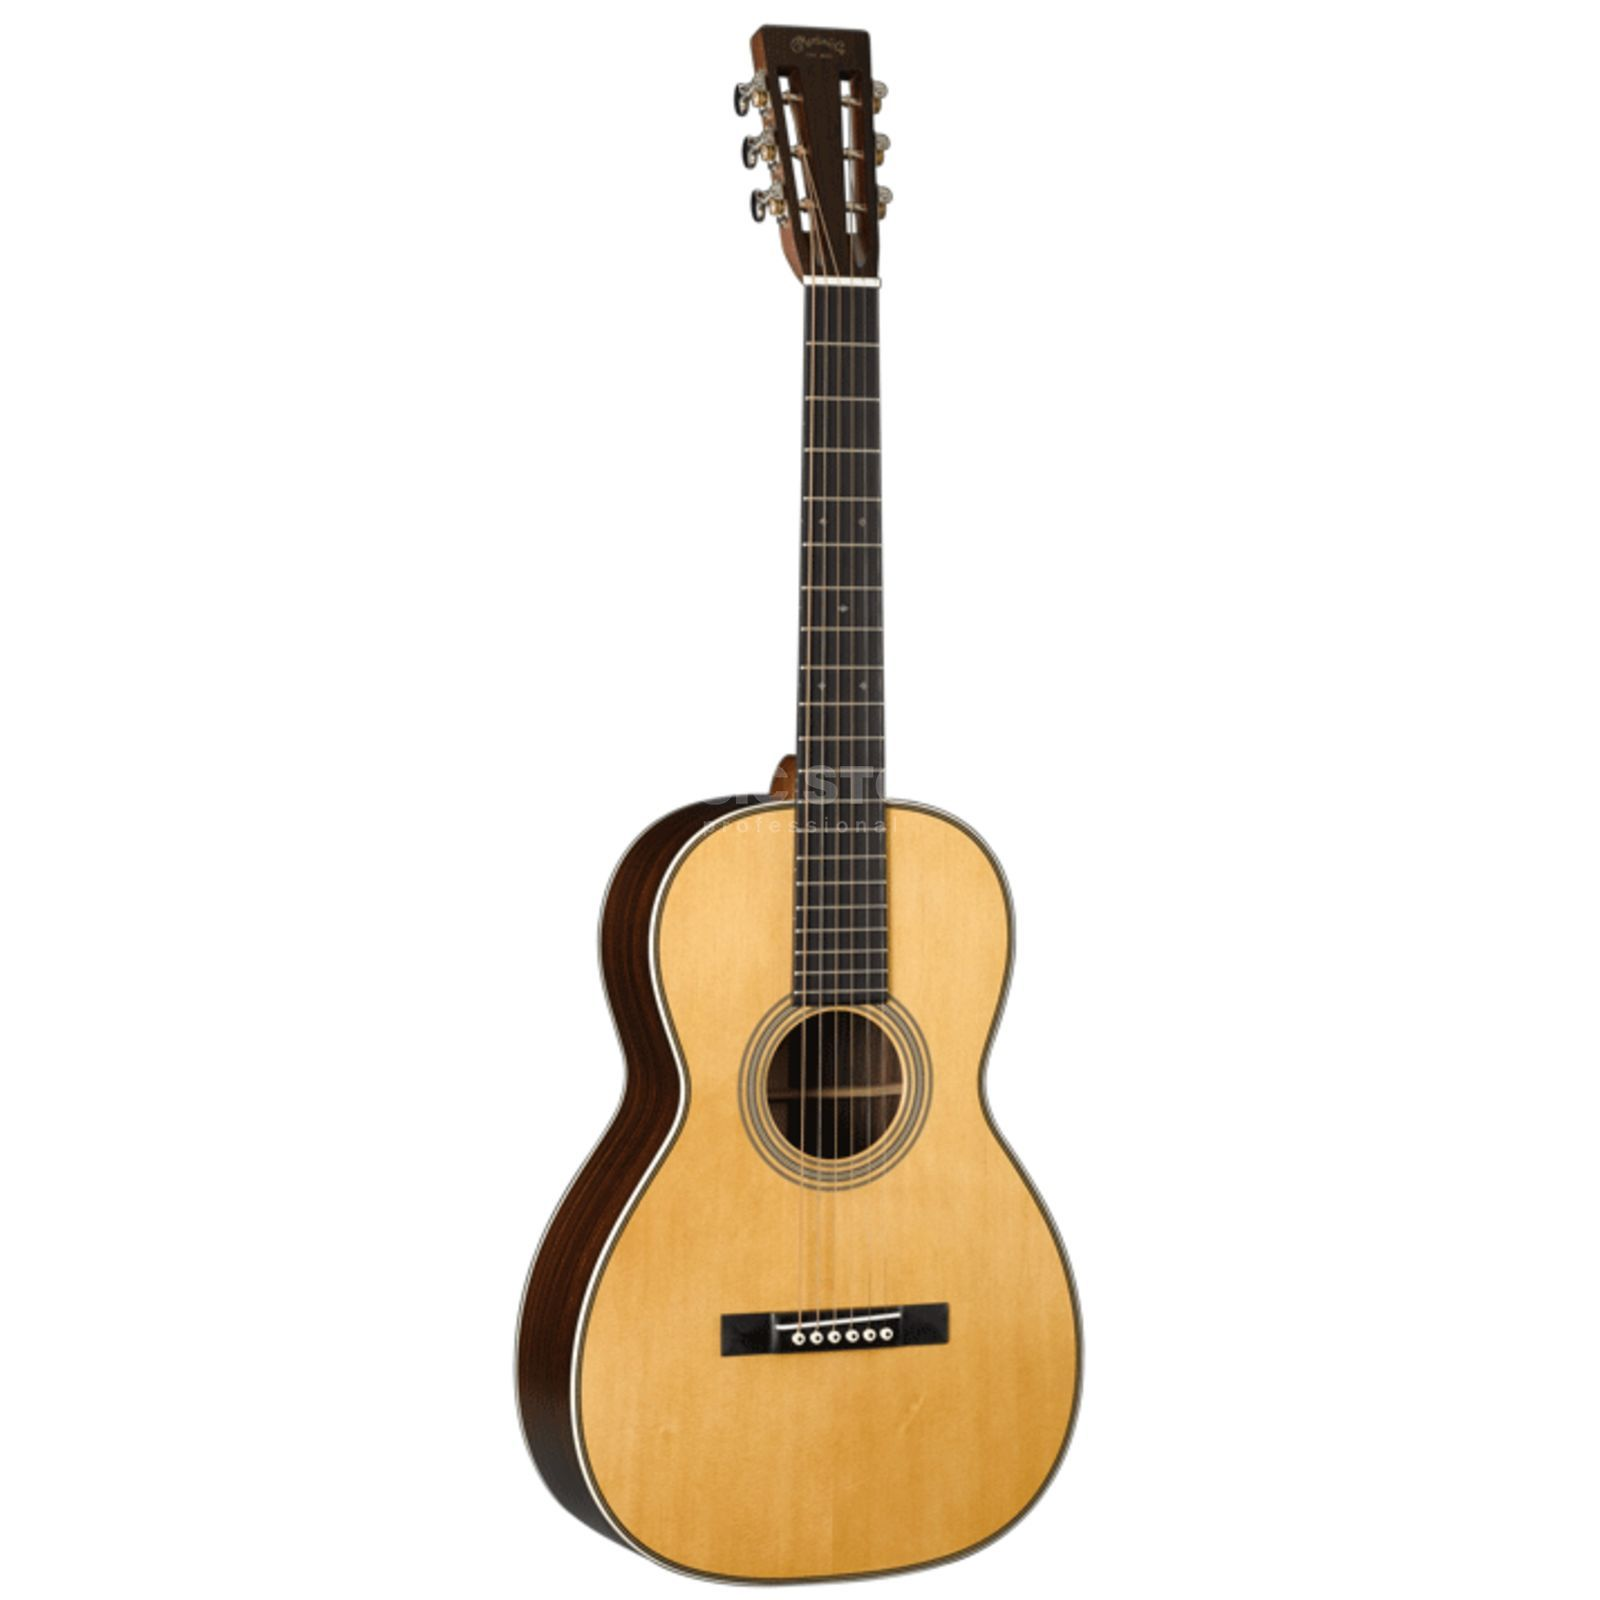 Martin Guitars 0-28VS Sunburst Productafbeelding